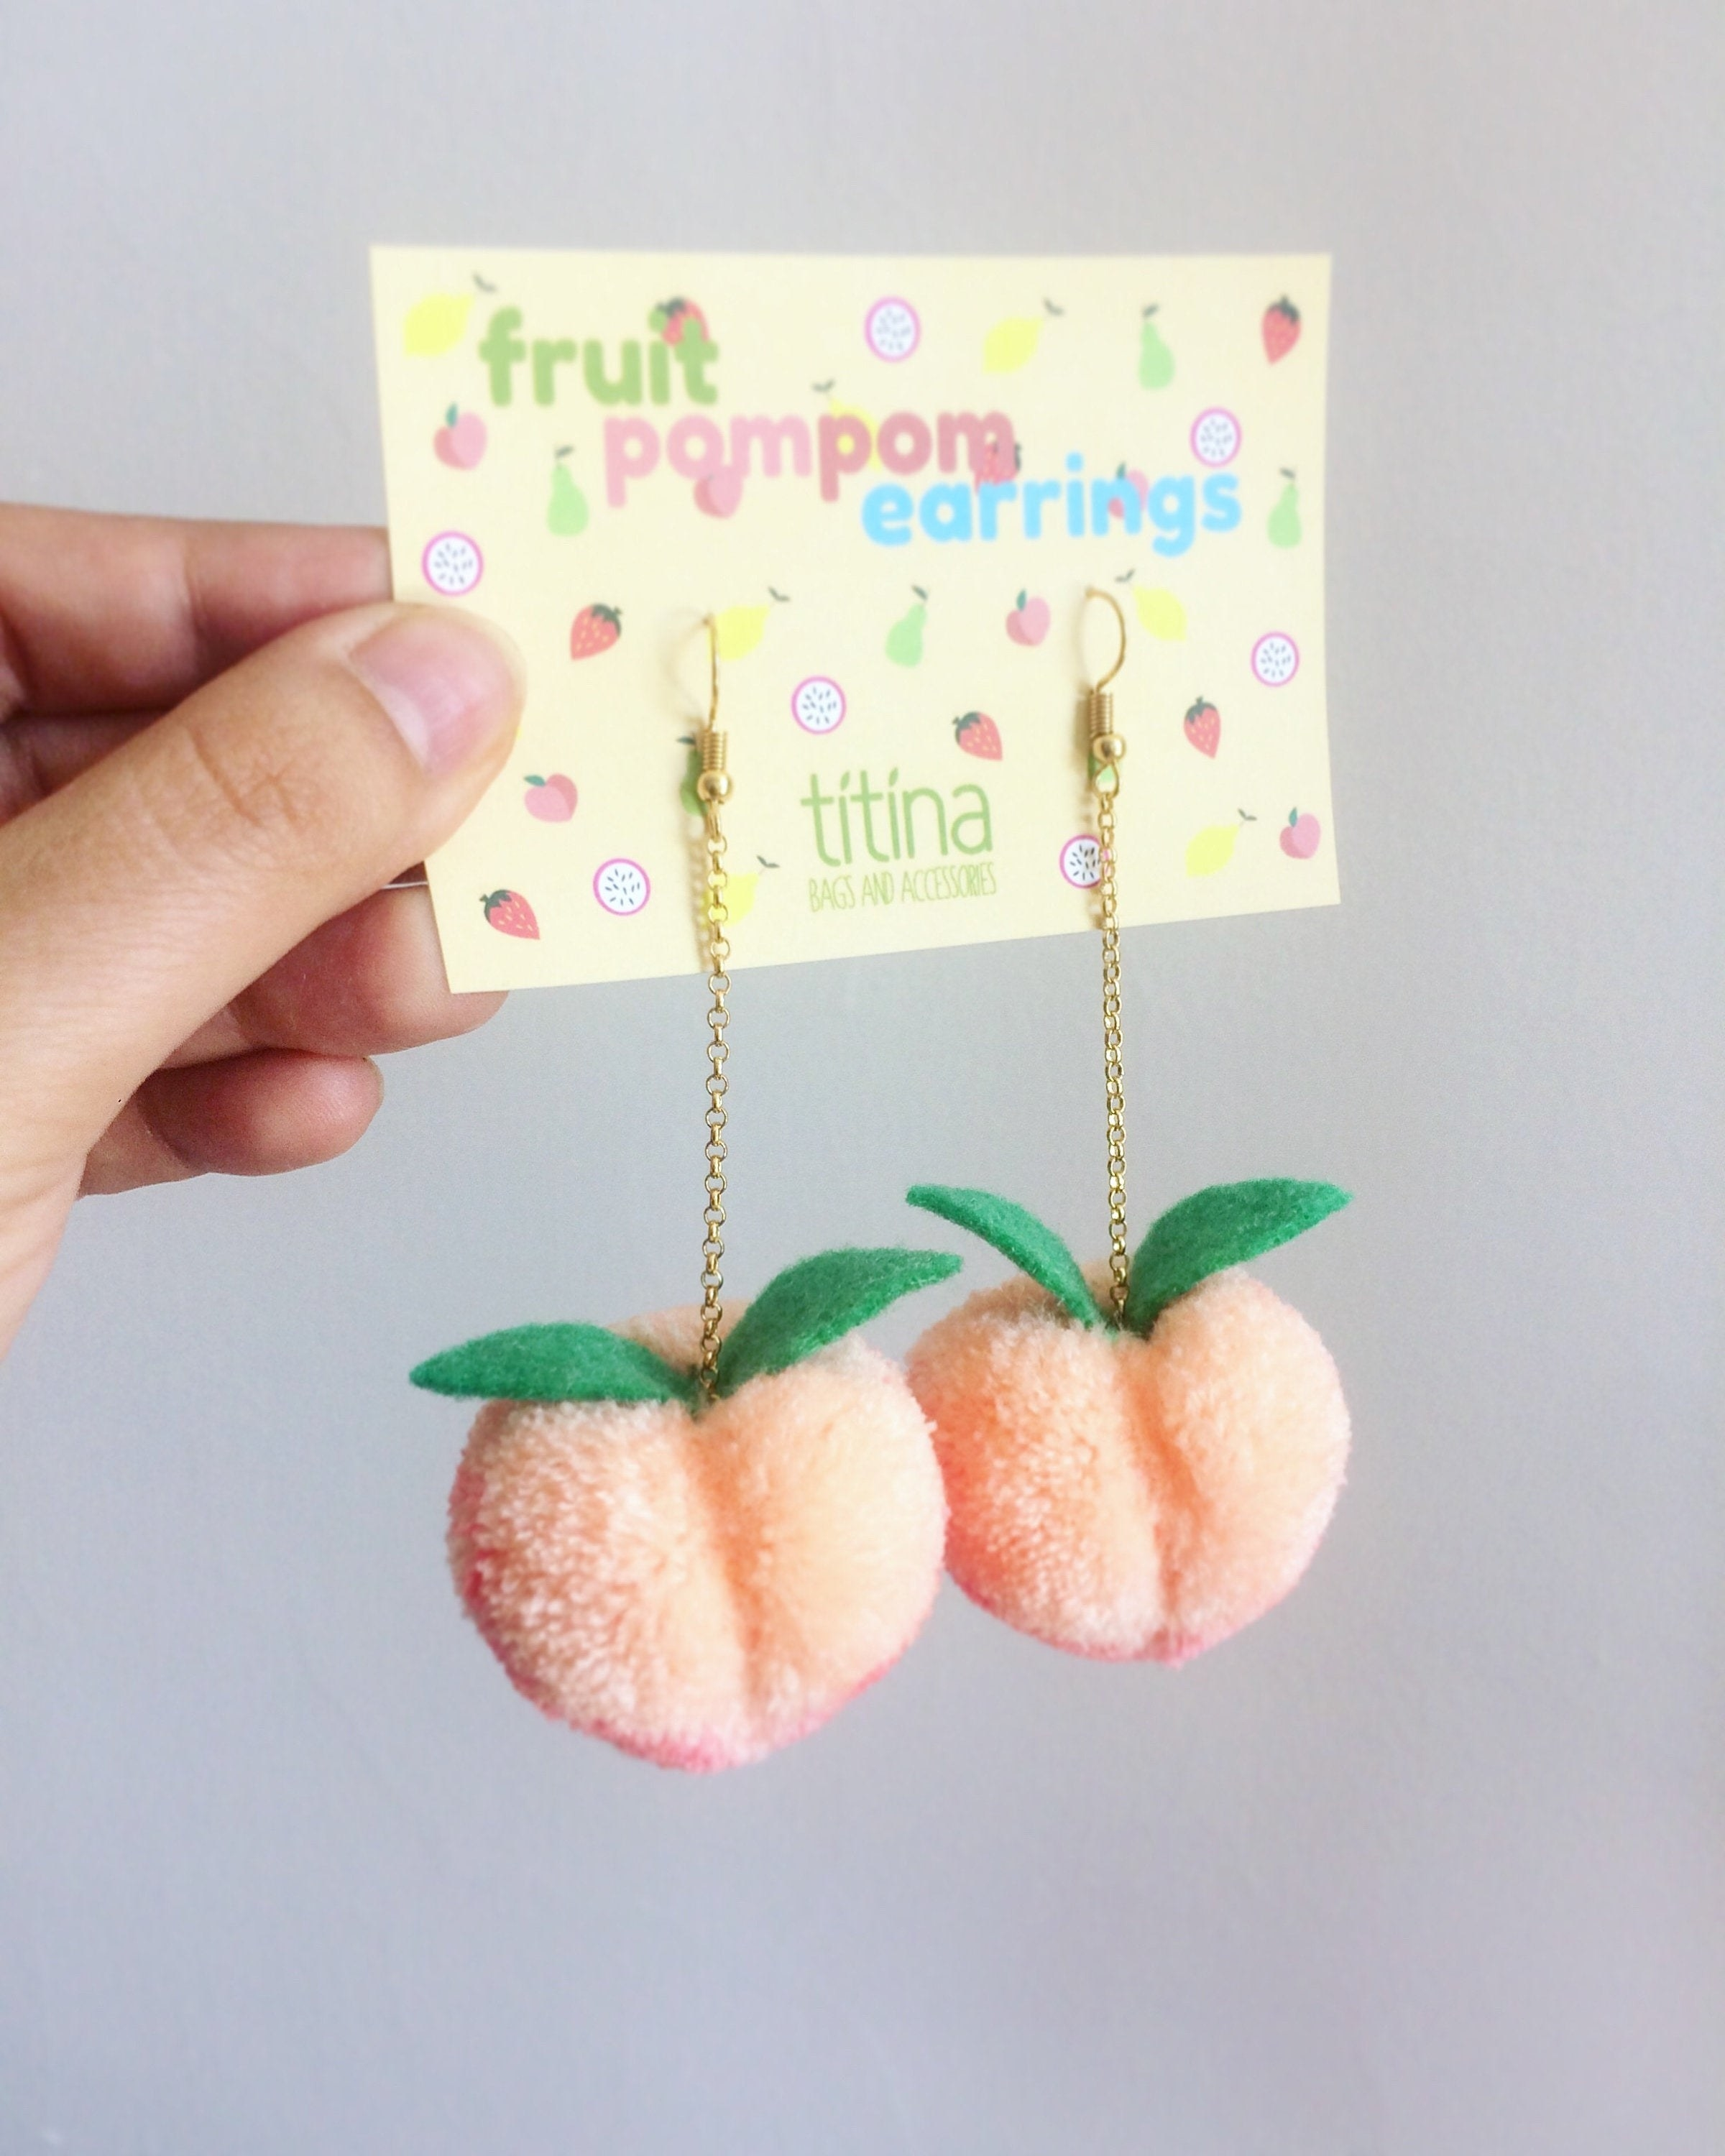 plush peach-shaped earrings in light orange and pink with two leaves on the top hanging from a gold chain